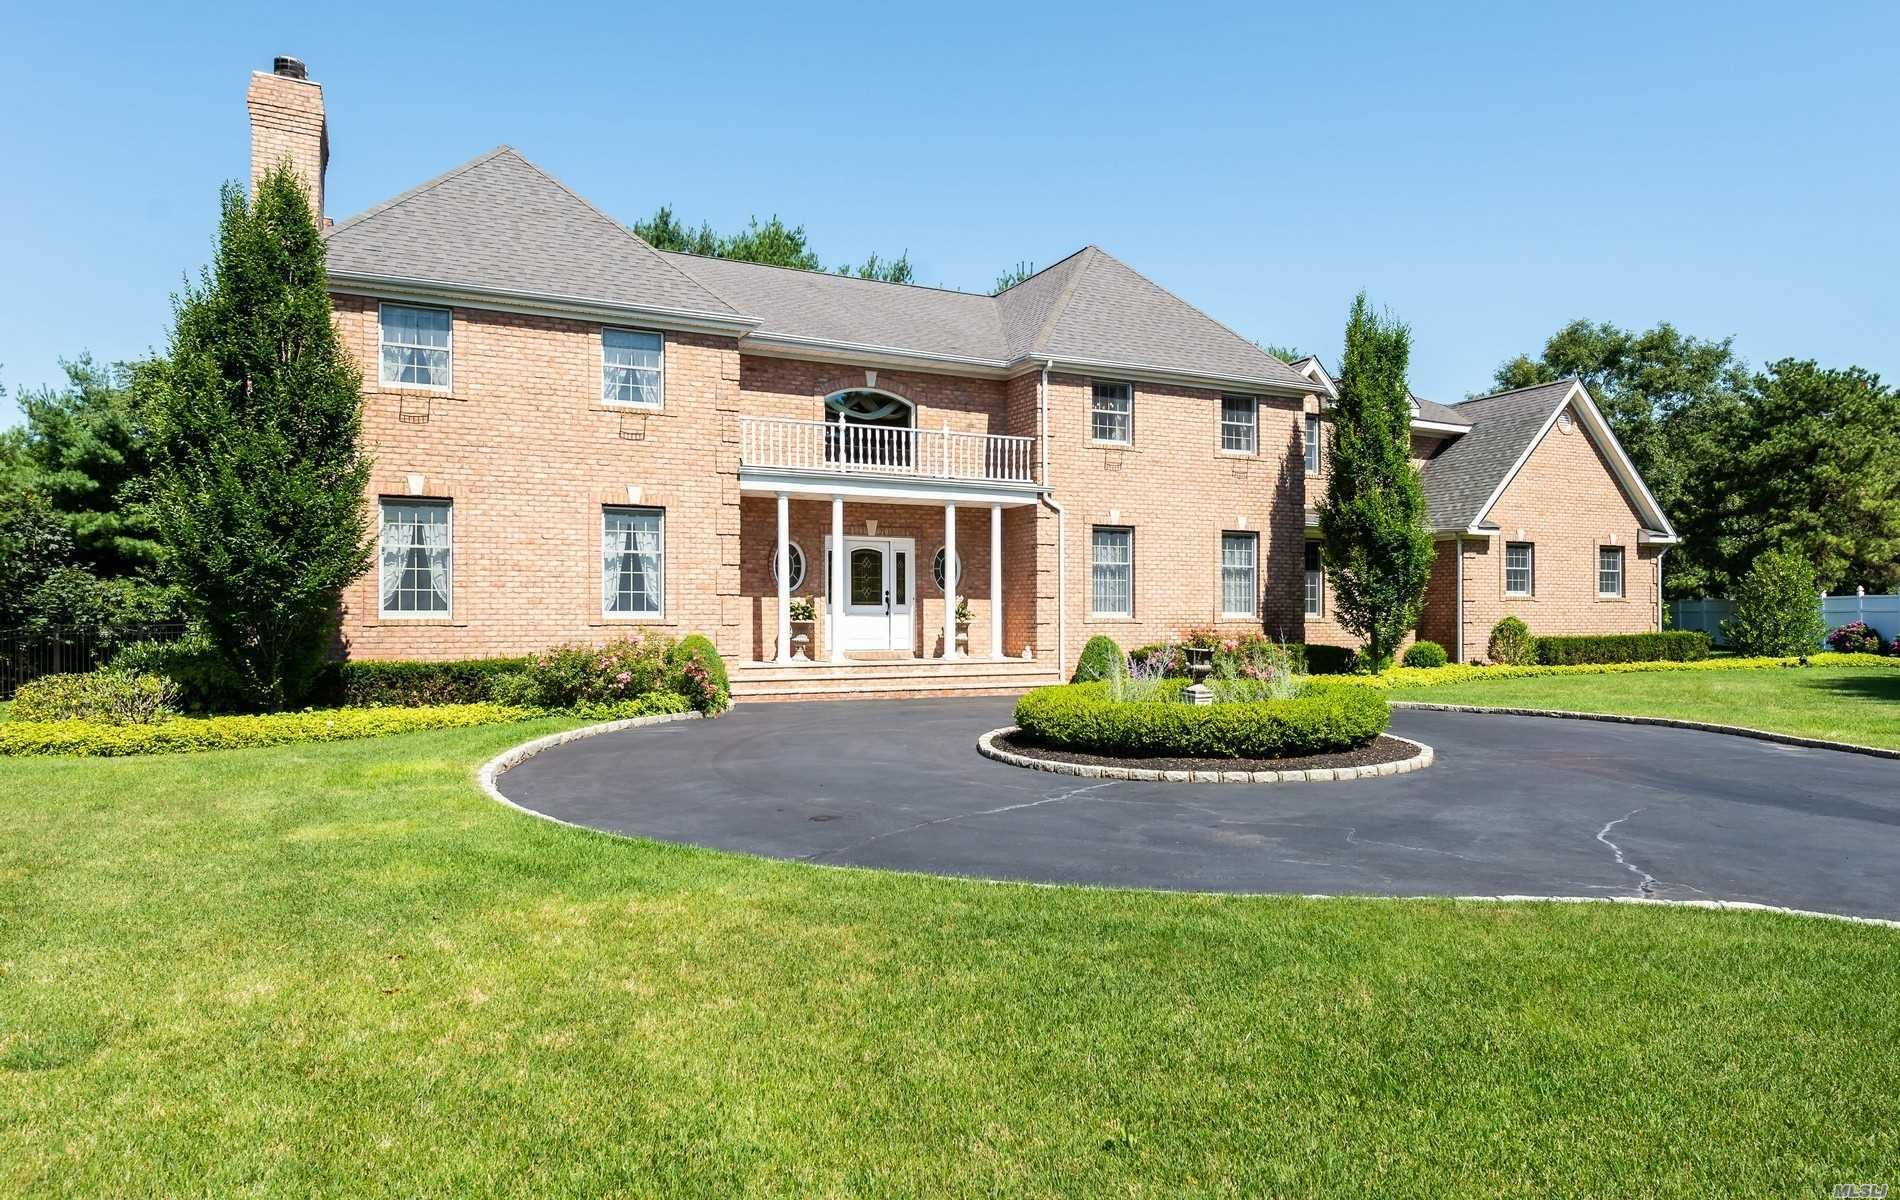 23 Alley Pond Court, Dix Hills, NY 11746 - MLS#: 3237363